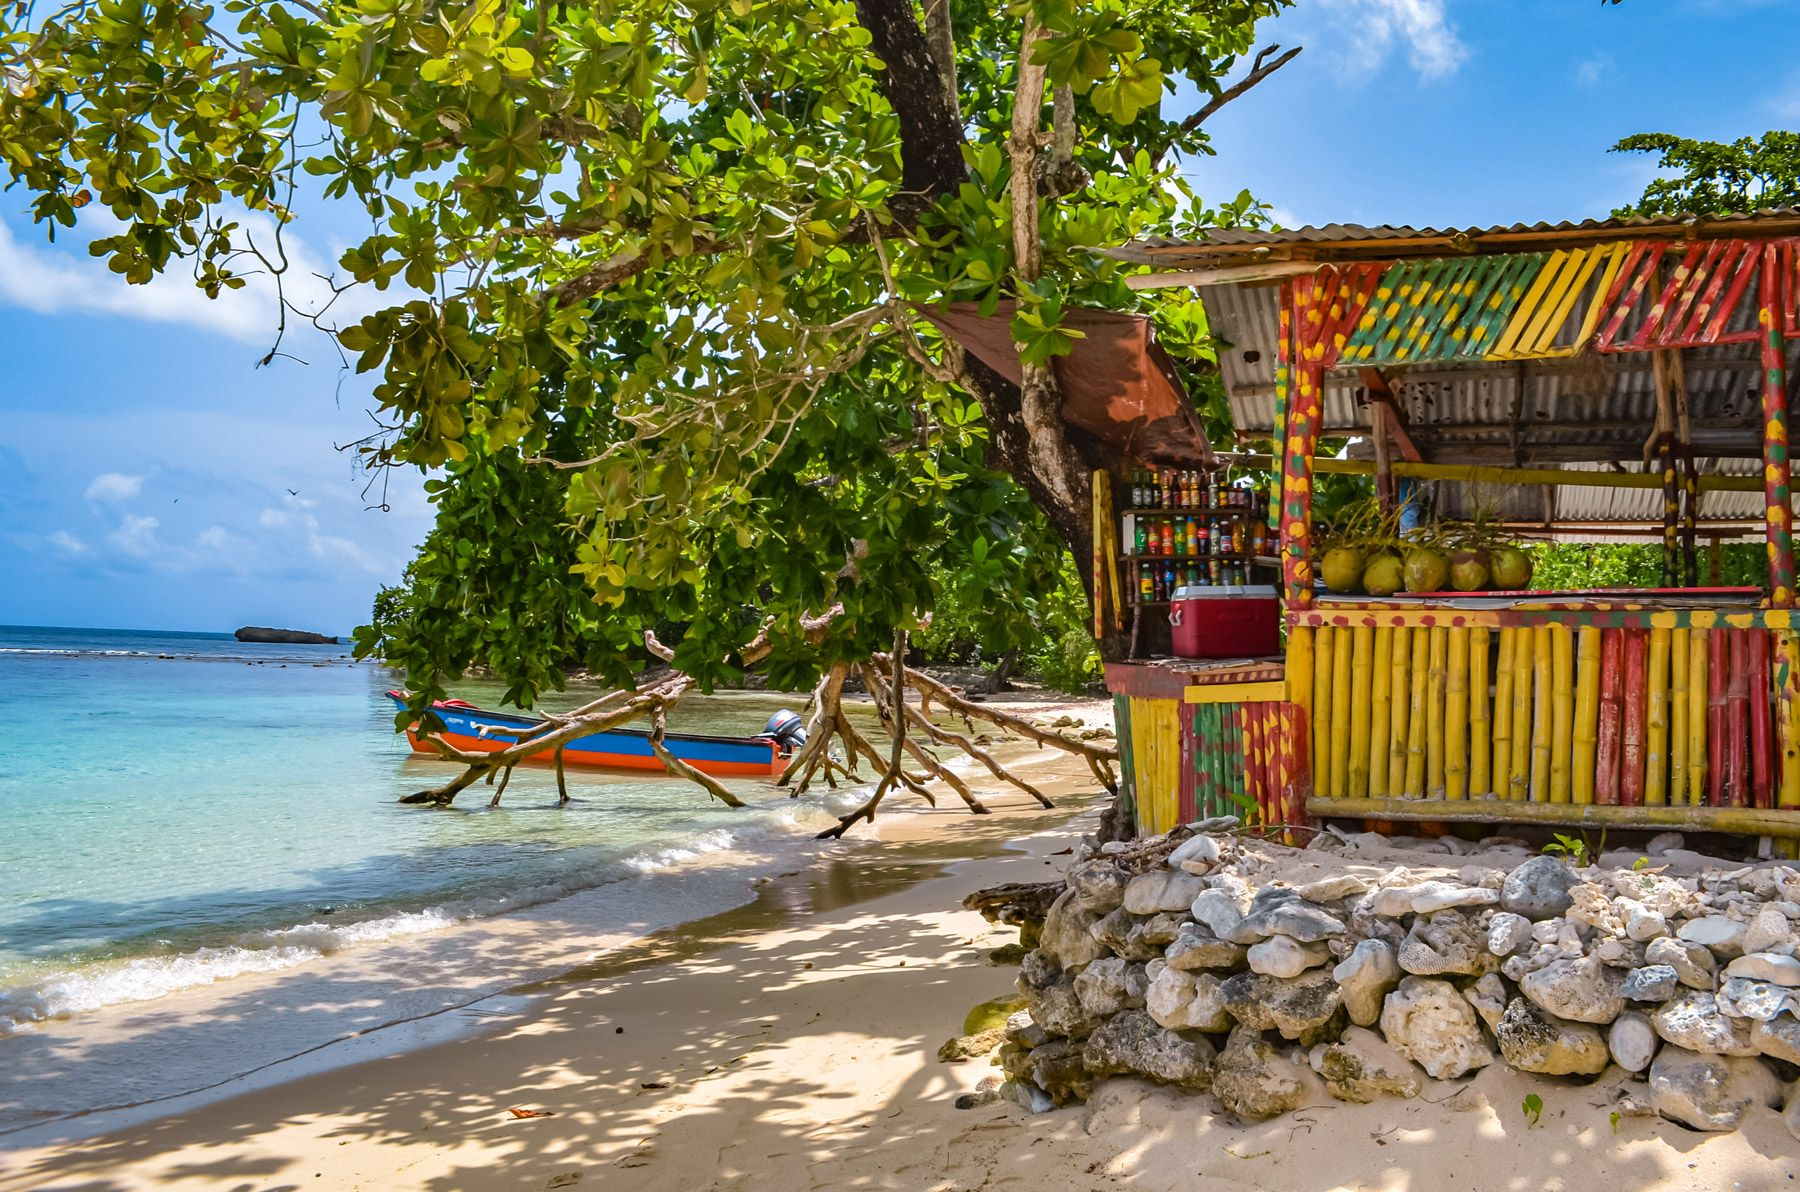 43 Amazing Things To Do In Jamaica: Points of Interest ...